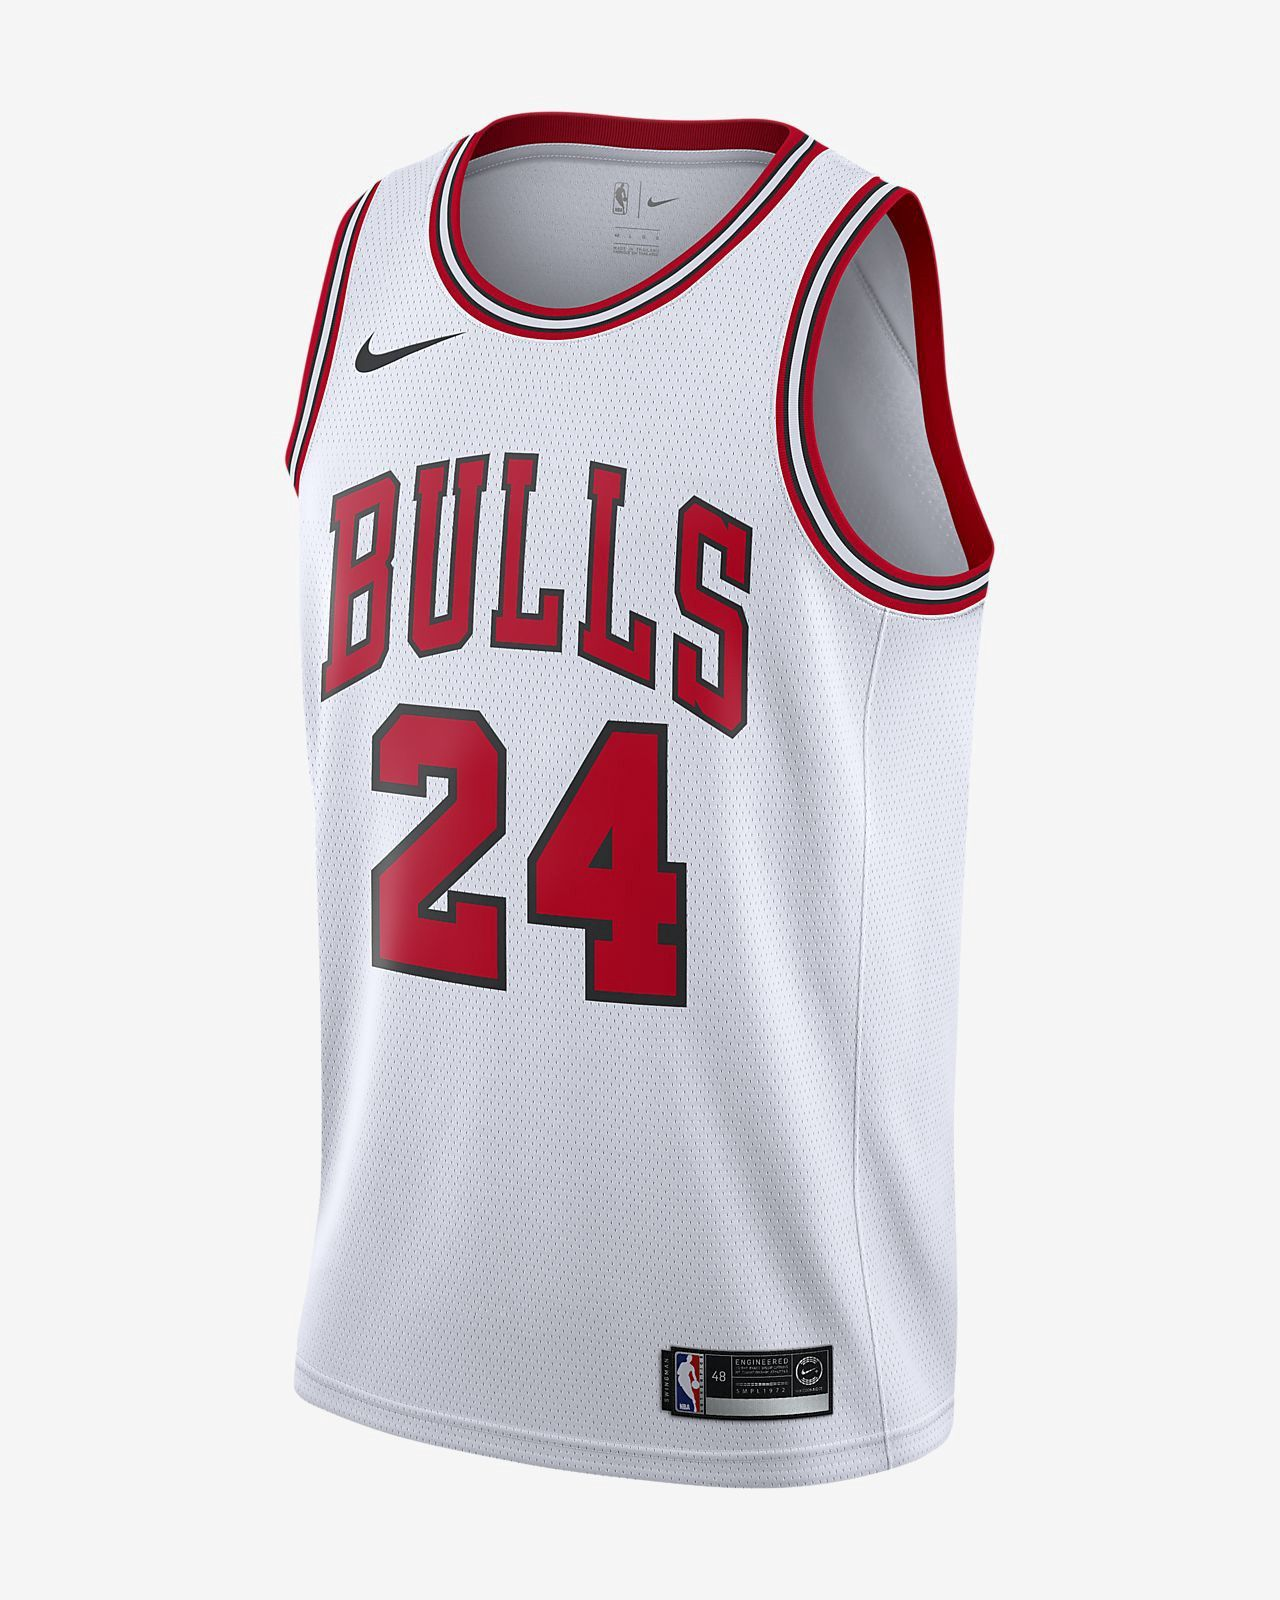 Nike Lauri Markkanen Association Edition Swingman Jersey (Chicago Bulls) Men s  Nba Connected - Xl (52) c28998524